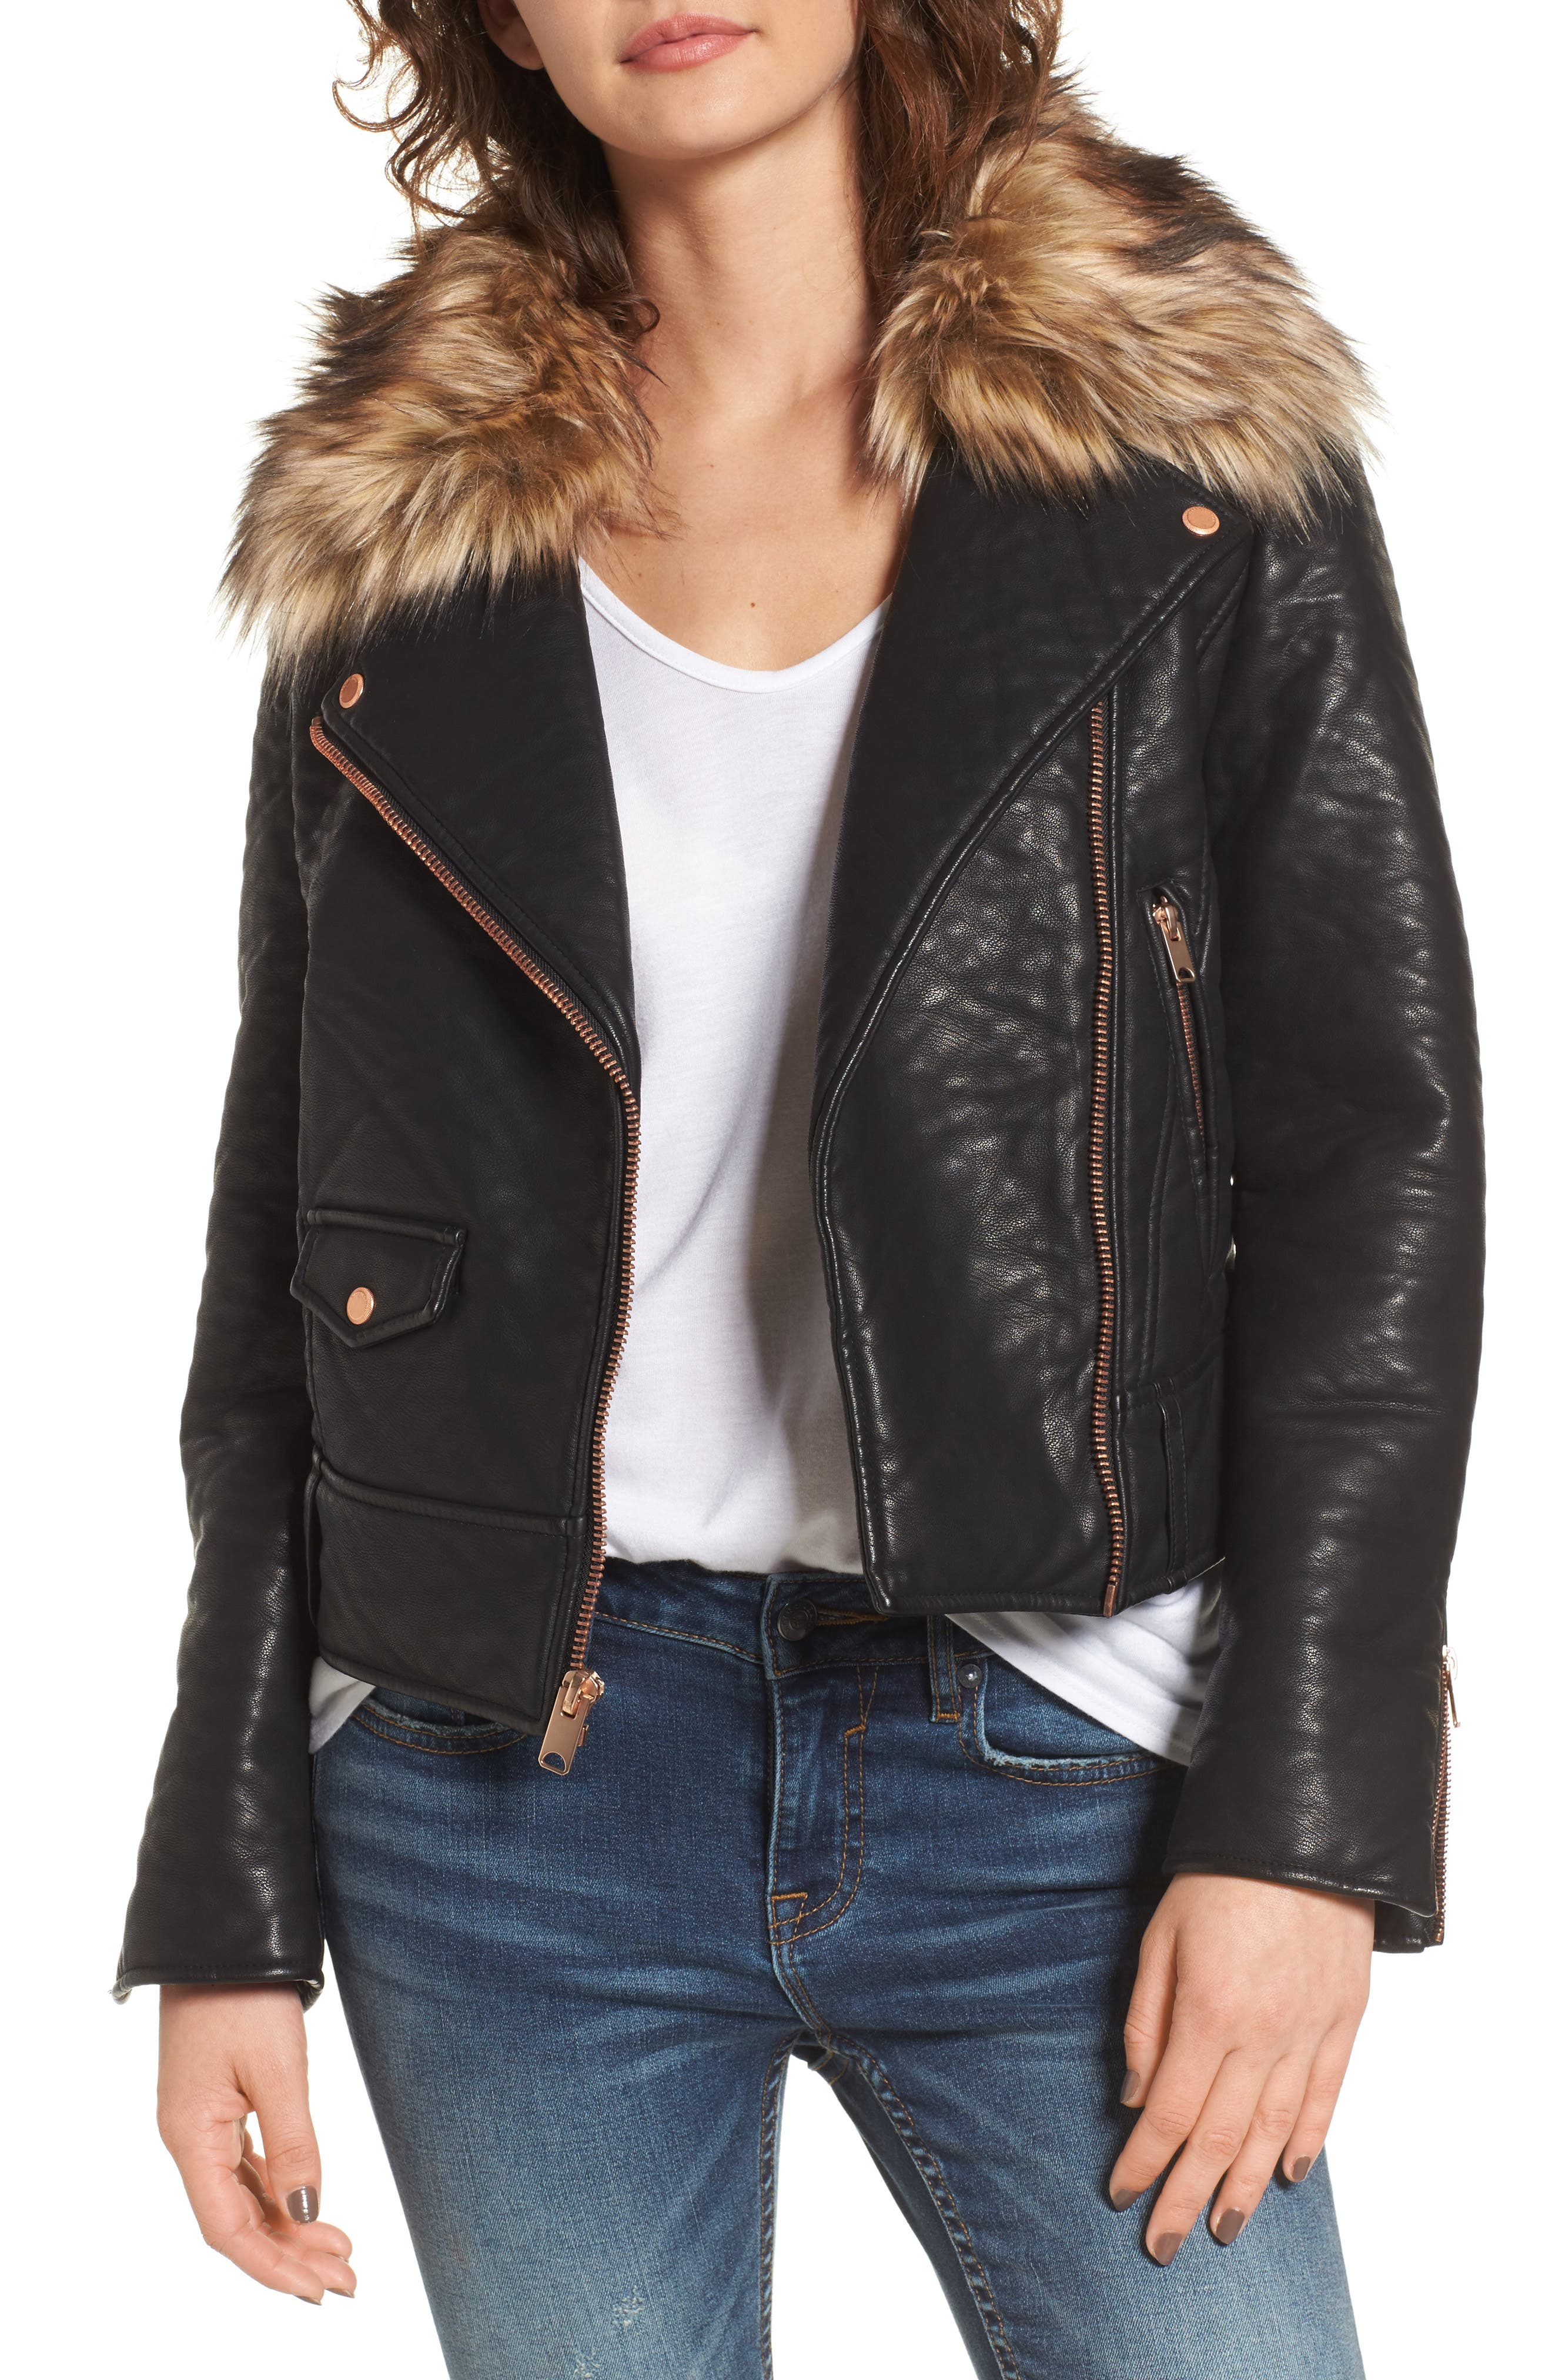 MARC NEW YORK Andrew Marc Beverly Faux Leather Jacket with Faux Fur Trim